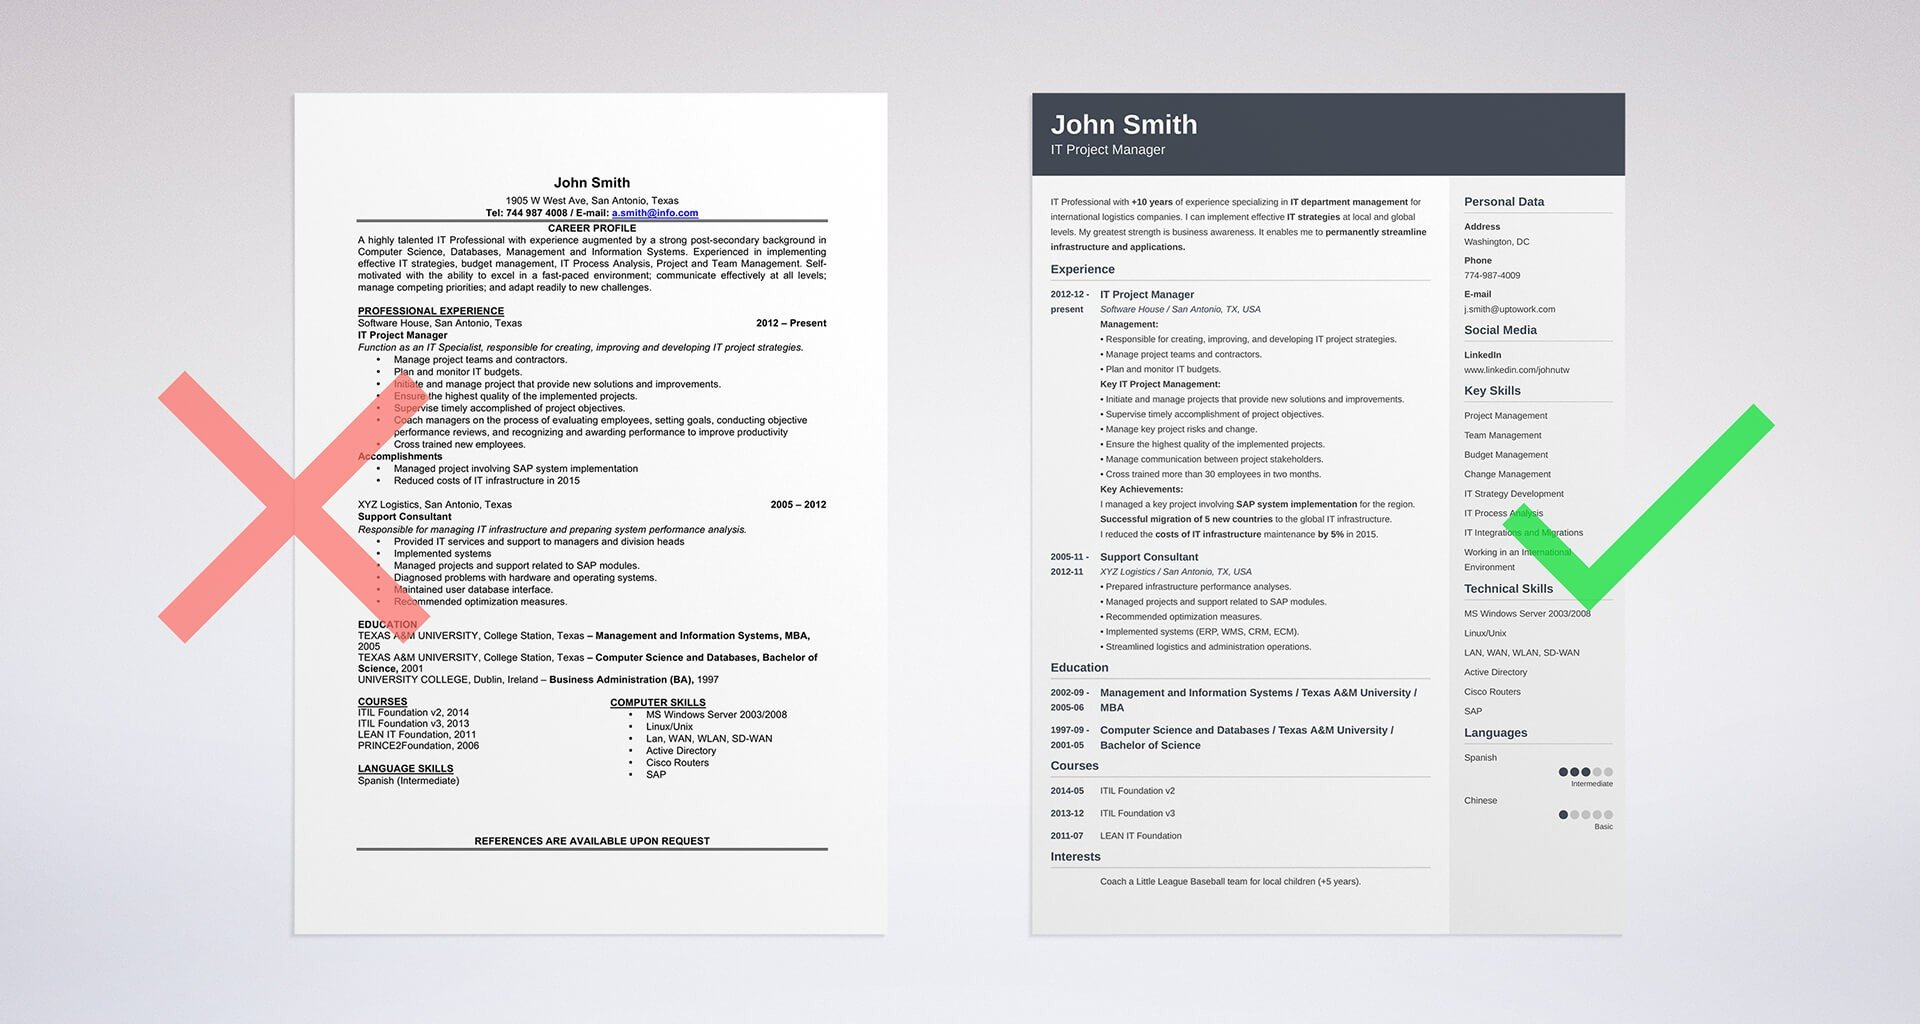 20 Resume Objective Examples Use Them On Your Resume Tips – What is a Great Objective for a Resume